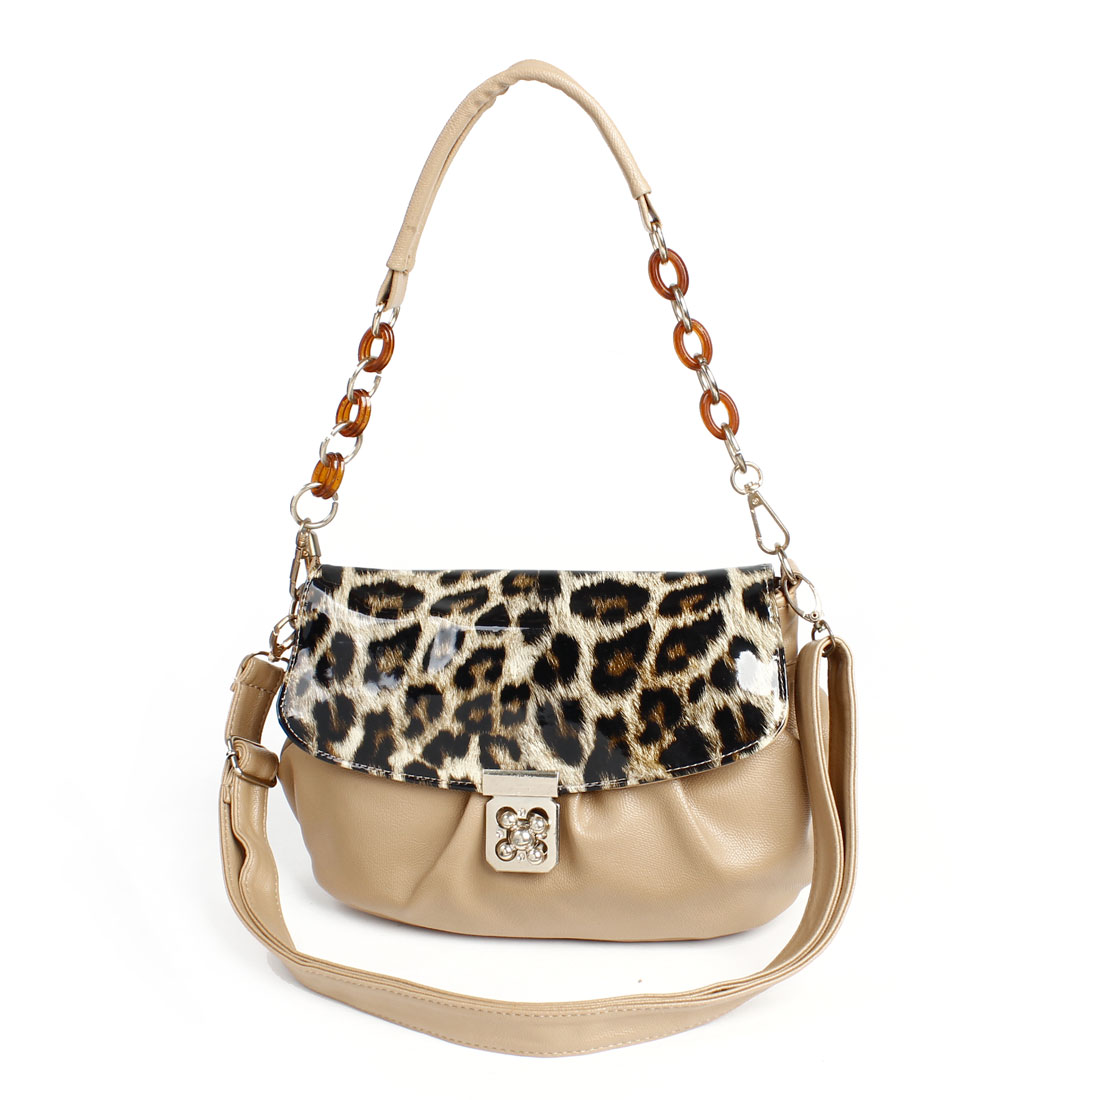 Lady Leopard Print Faux Leather Turn-lock Clasp Shoulder Bag Handbag Brown